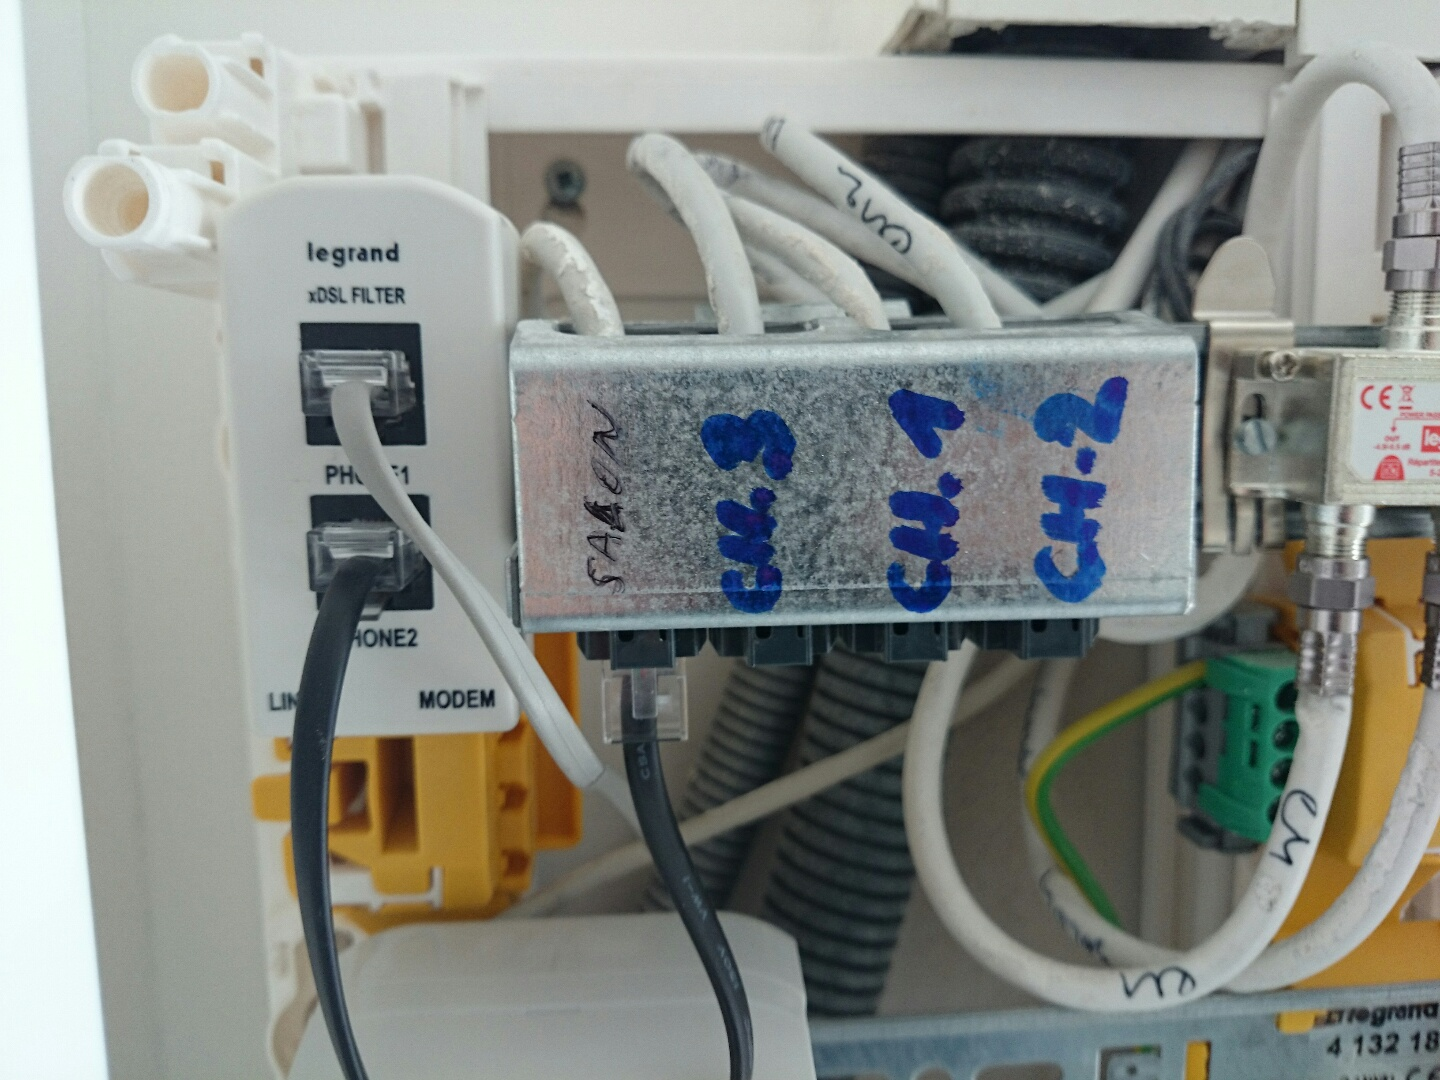 Branchement adsl r sidence carr affinit bonneuil sur marne - Branchement livebox telephone ...